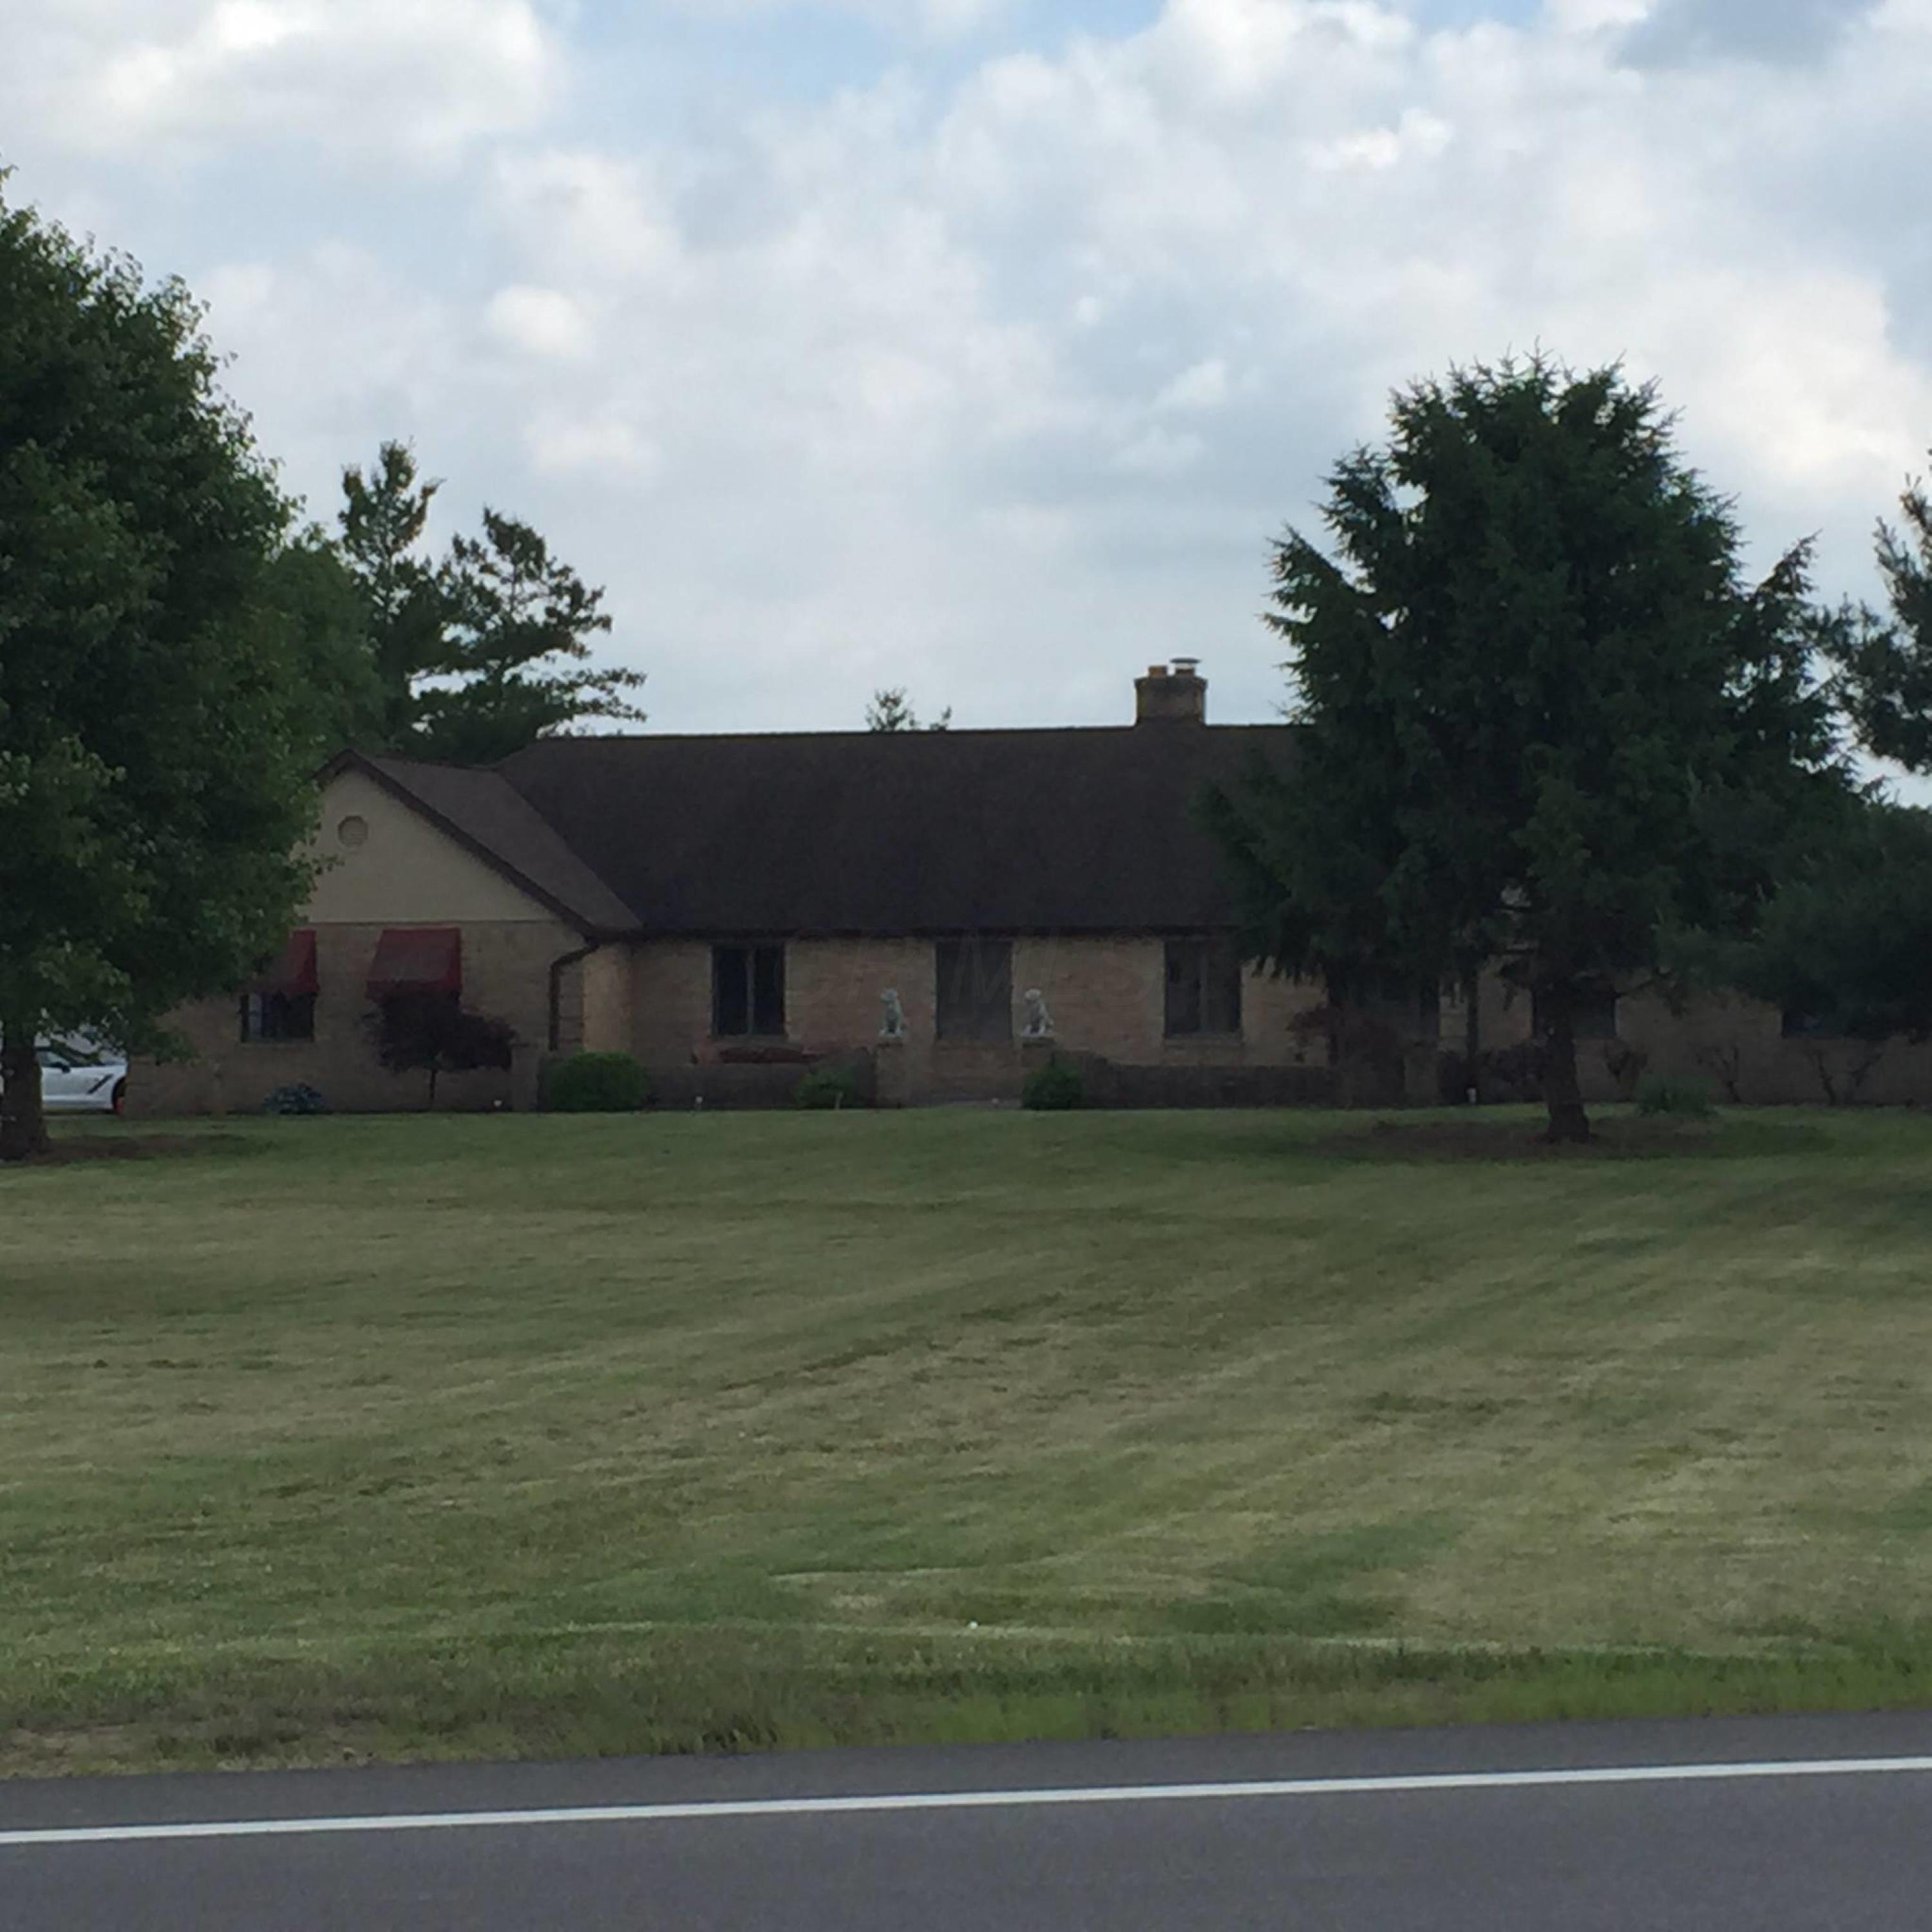 Photo of 7511 Feder Road, Galloway, OH 43119